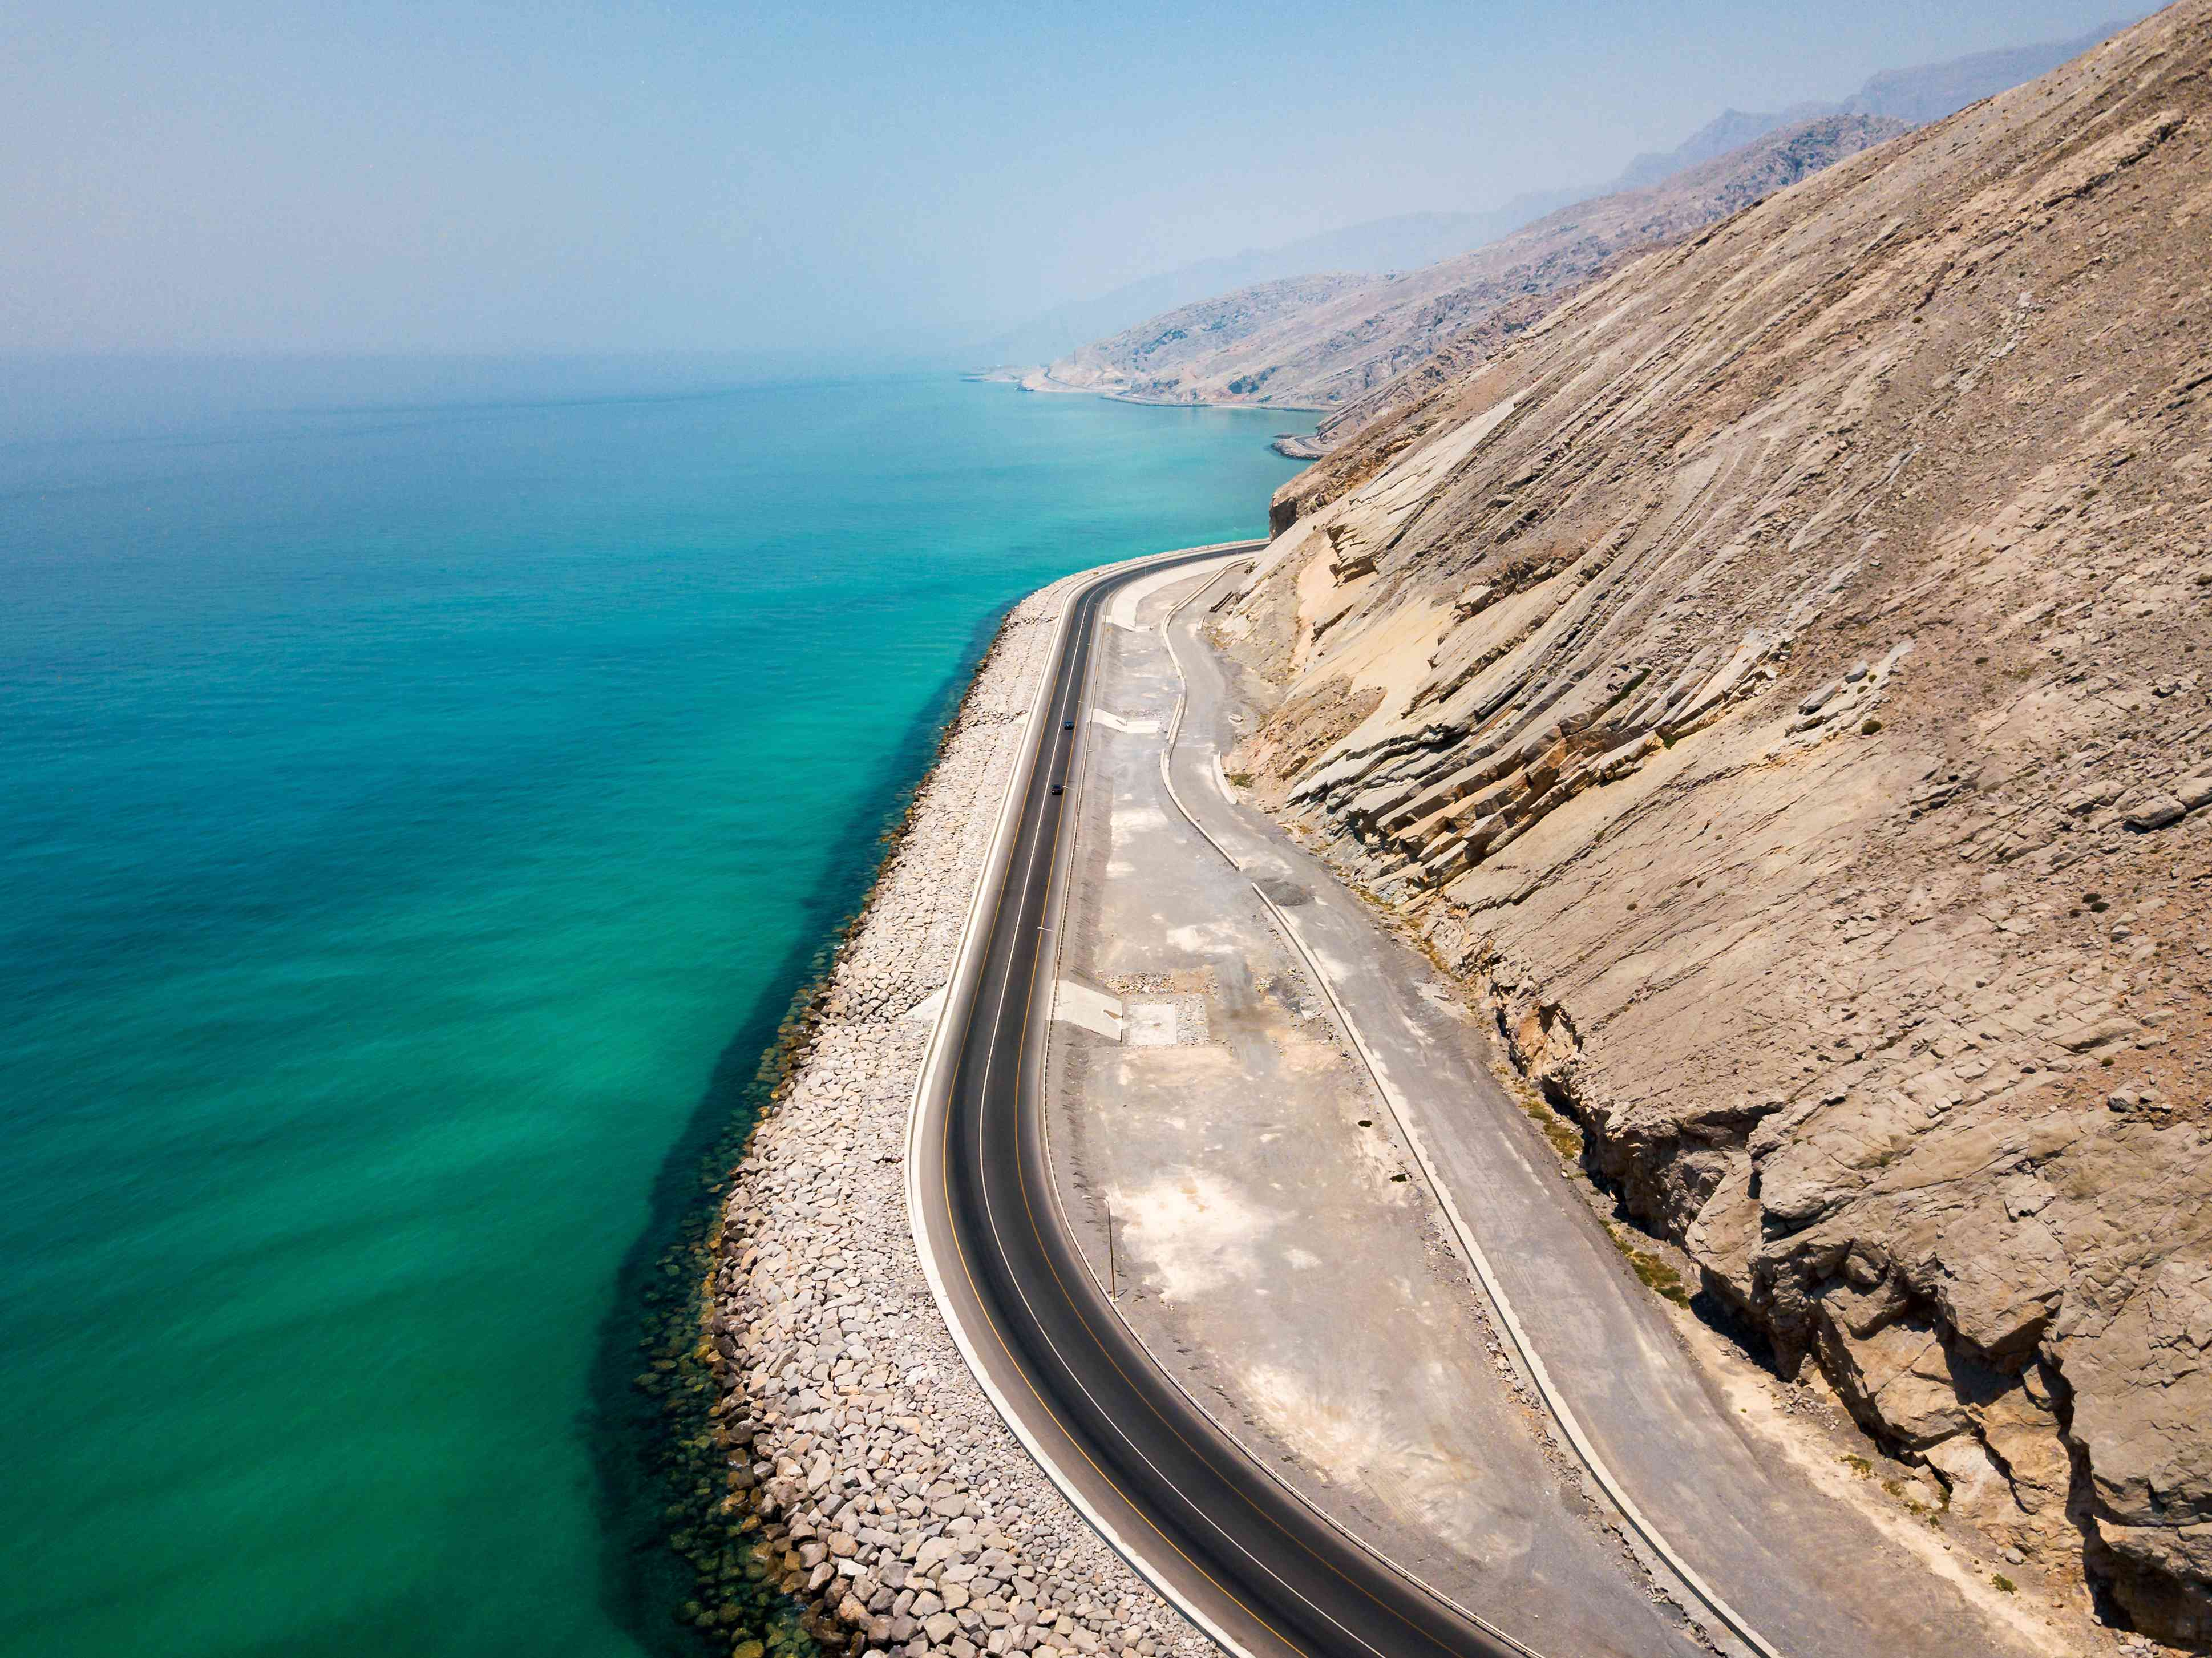 Coastal road and seaside in Musandam Governorate of Oman aerial view